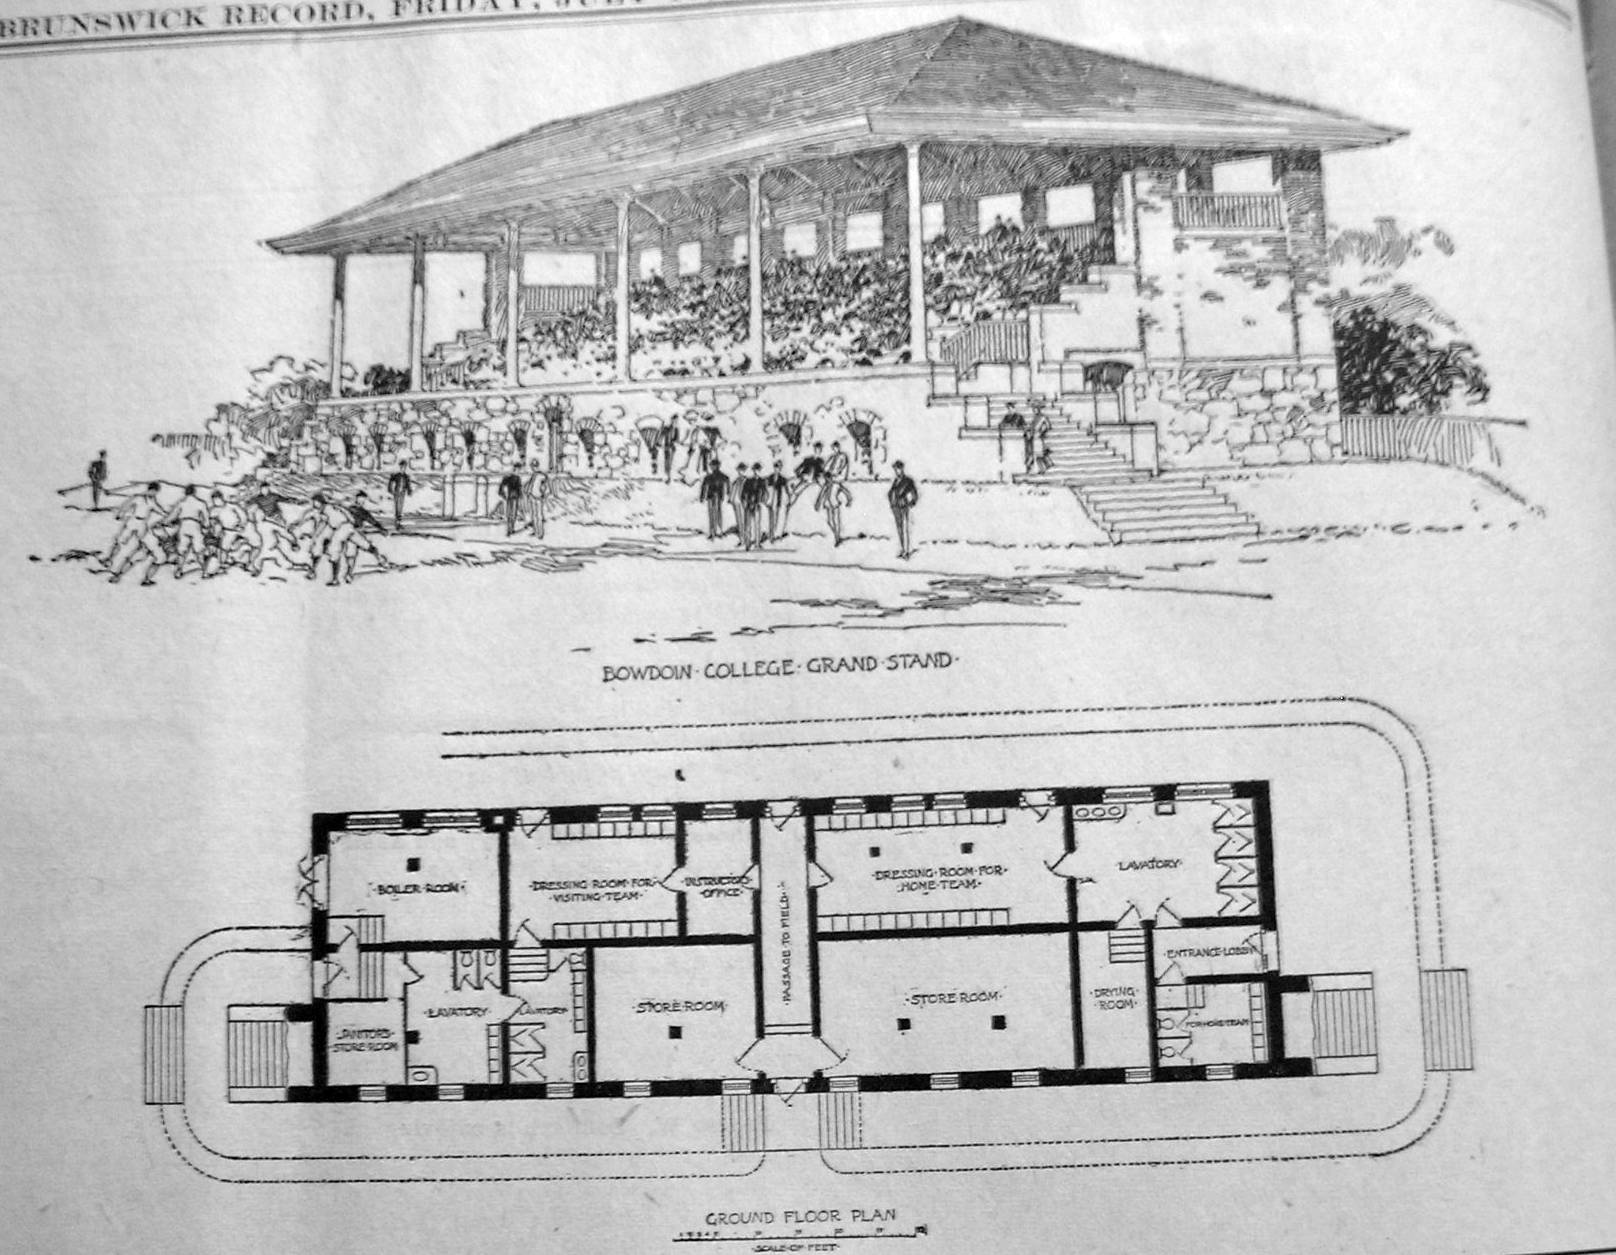 Brunswick Record rendering and plan of grandstand 7.10.03 2A.jpg